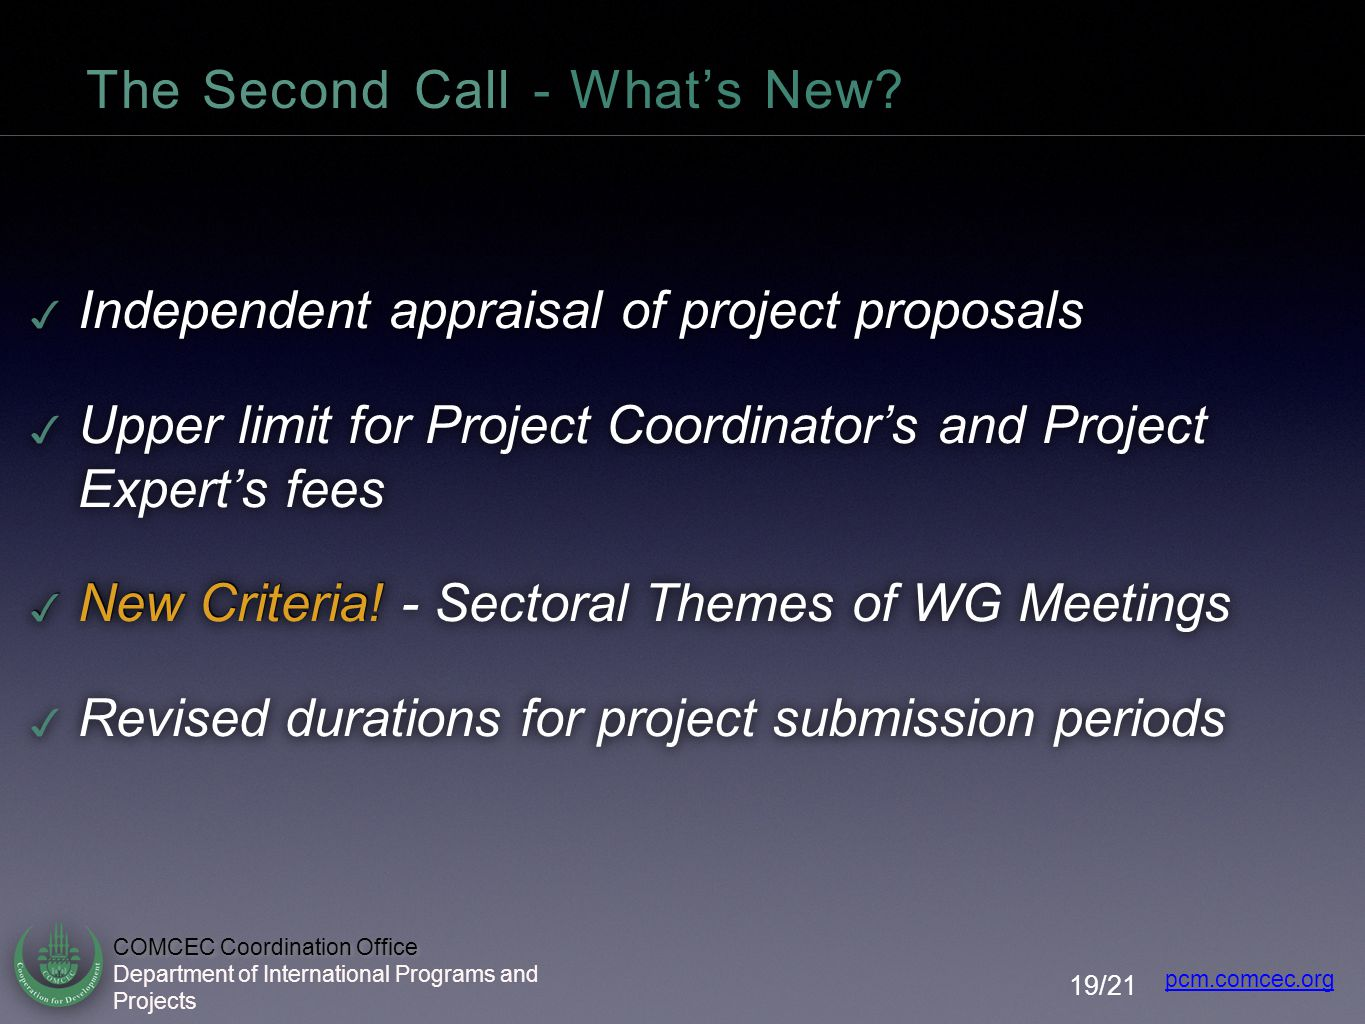 The Second Call - What's New